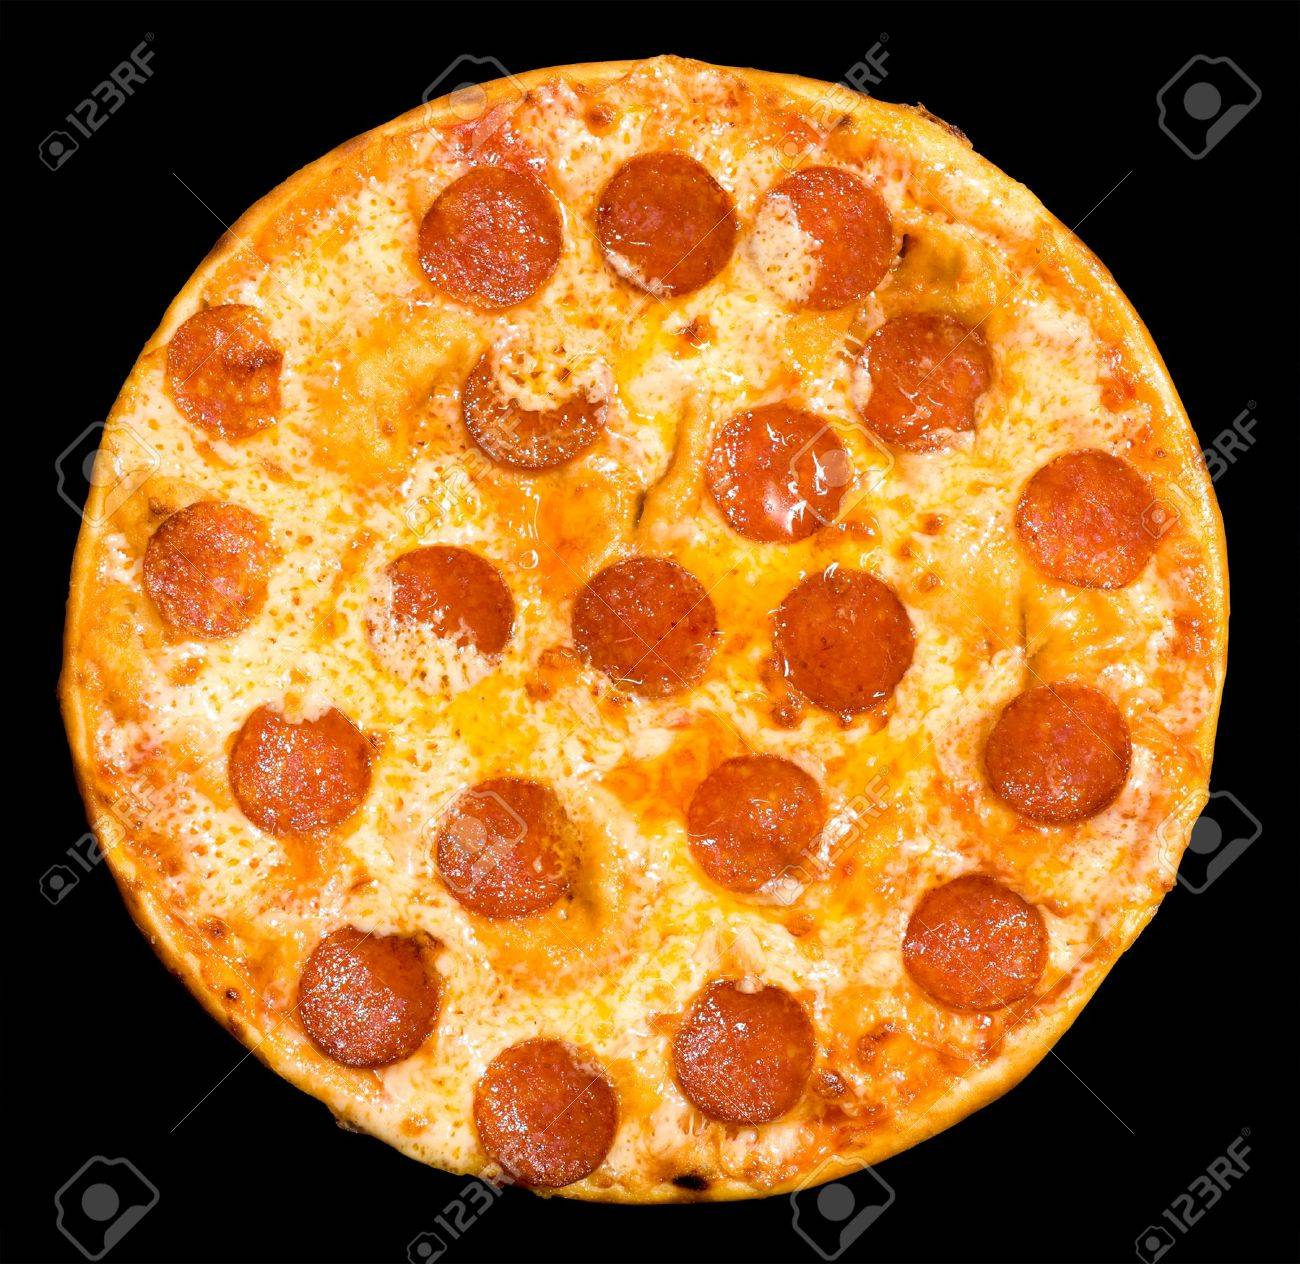 pizza with peperoni and cheese Stock Photo - 7995543